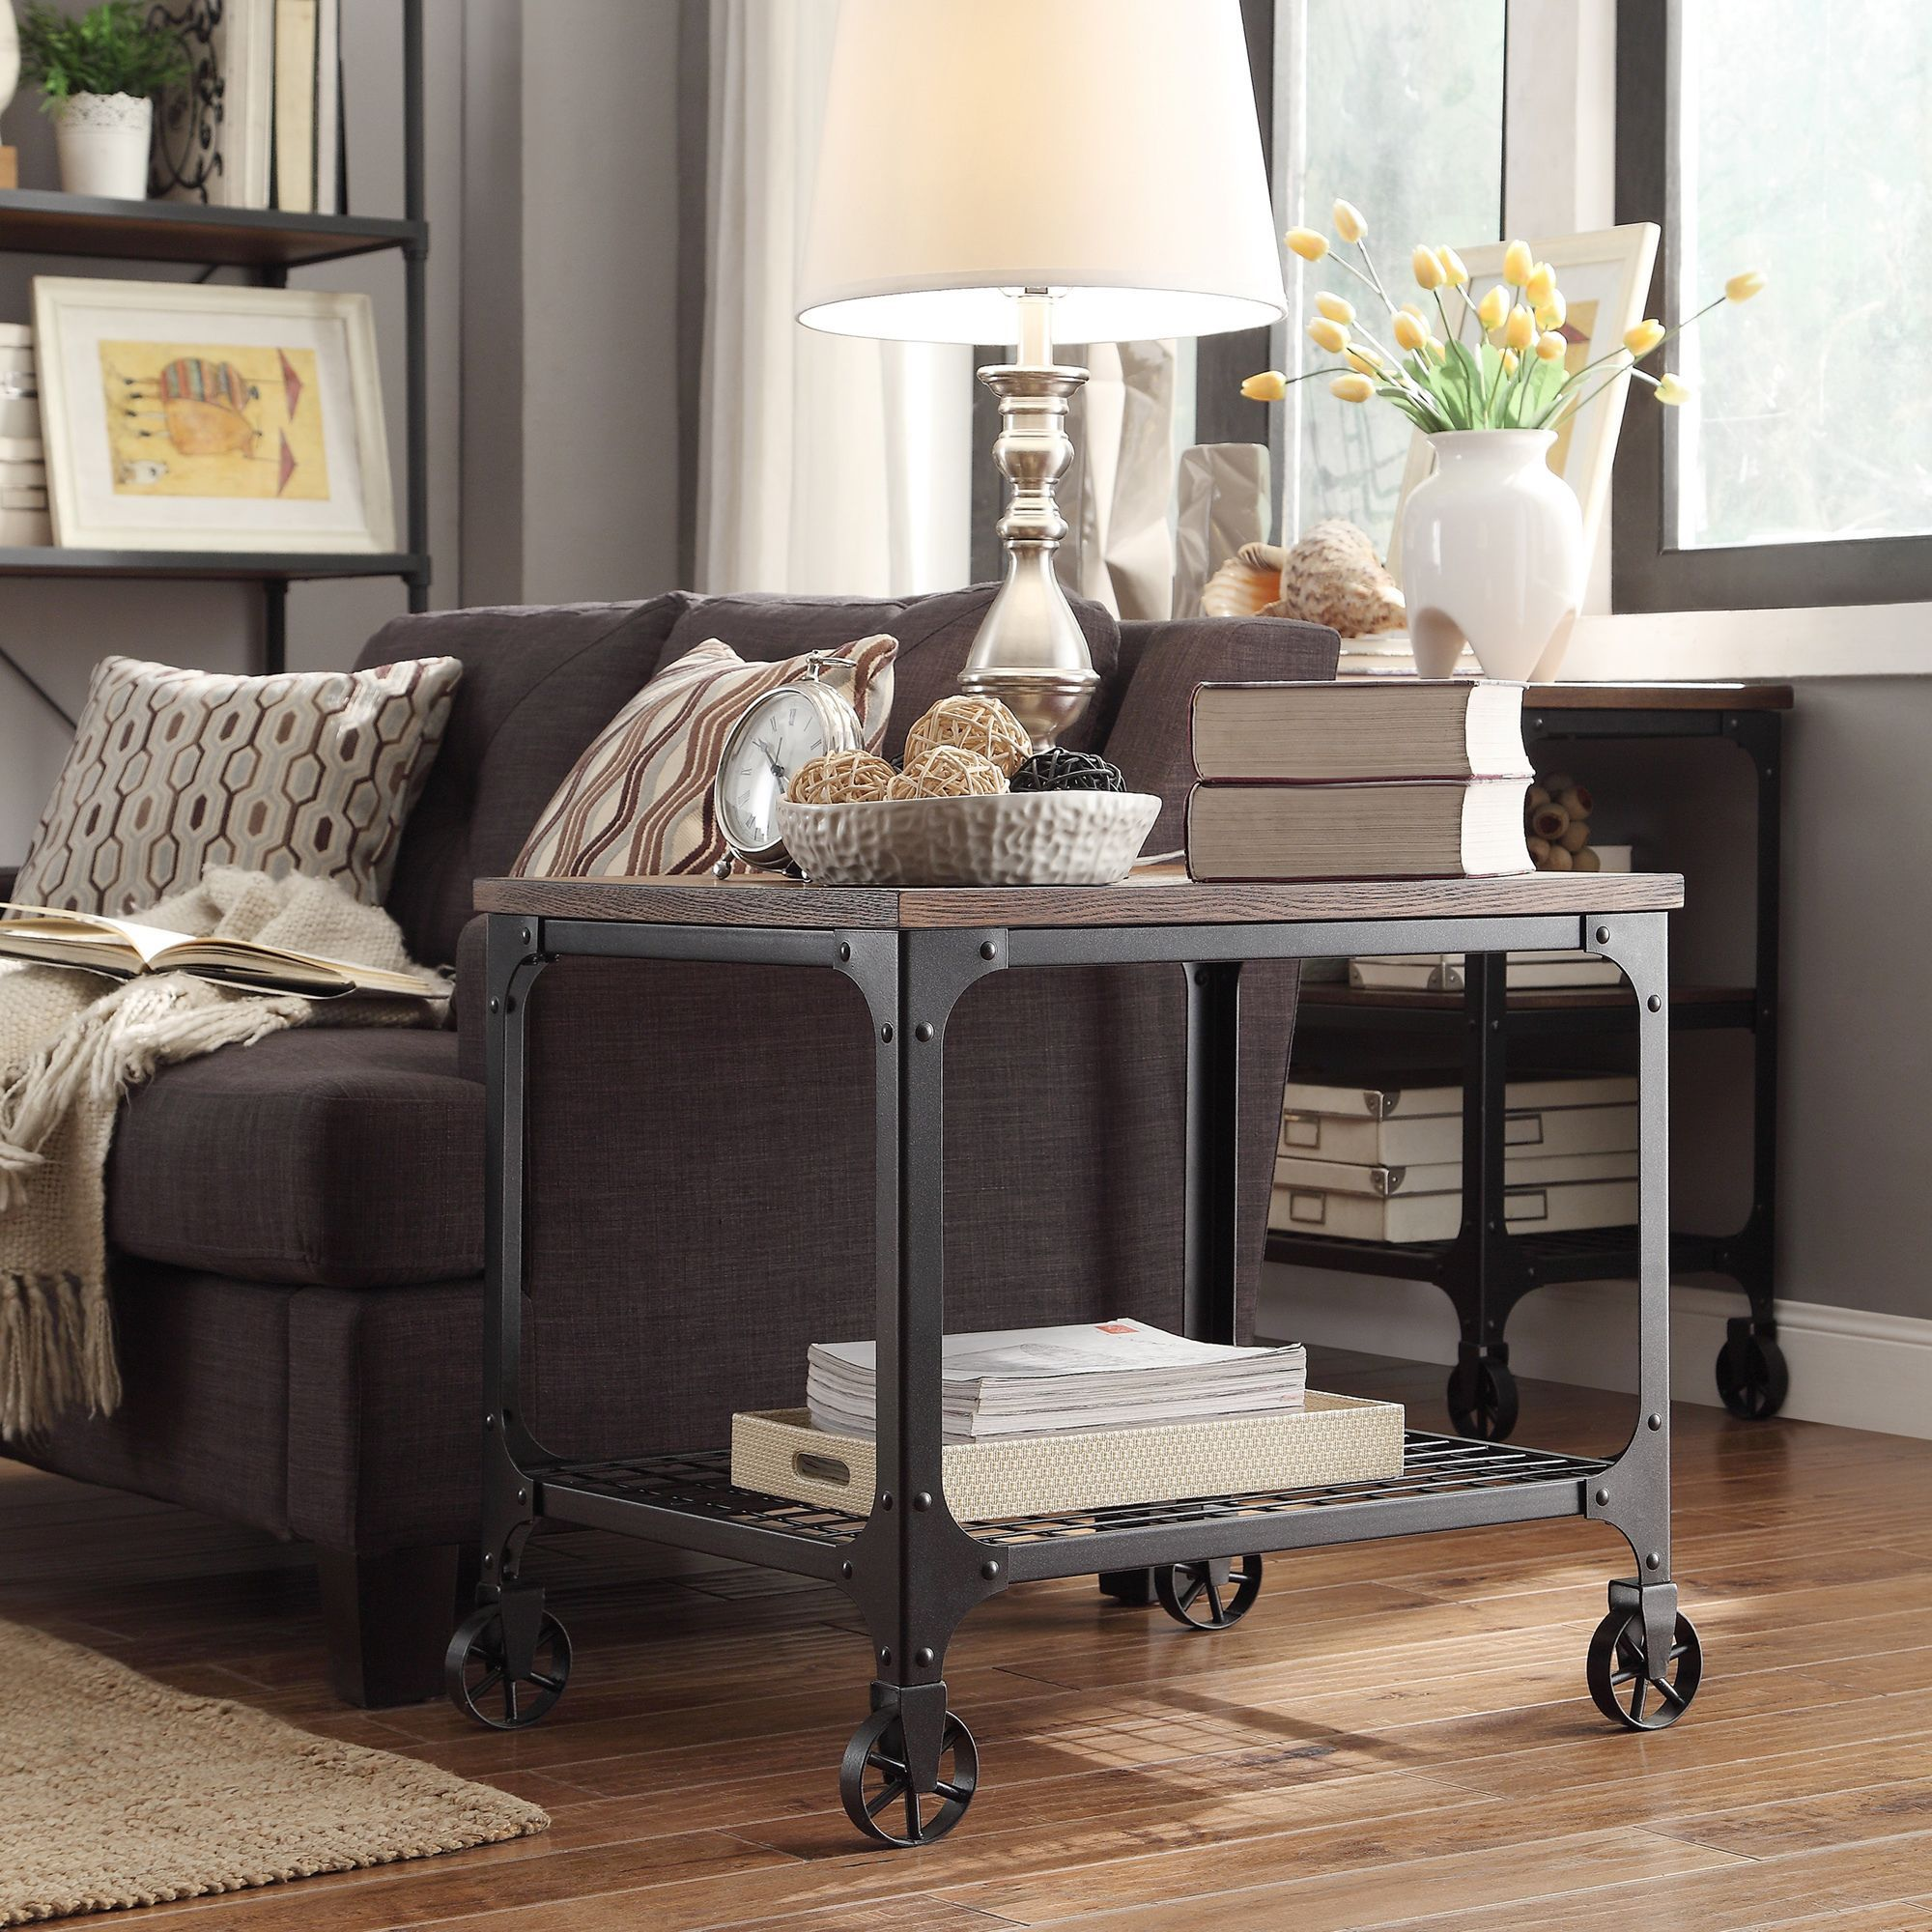 Nelson Rectangle Industrial Modern Rustic End Table by iNSPIRE Q Classic by  iNSPIRE Q